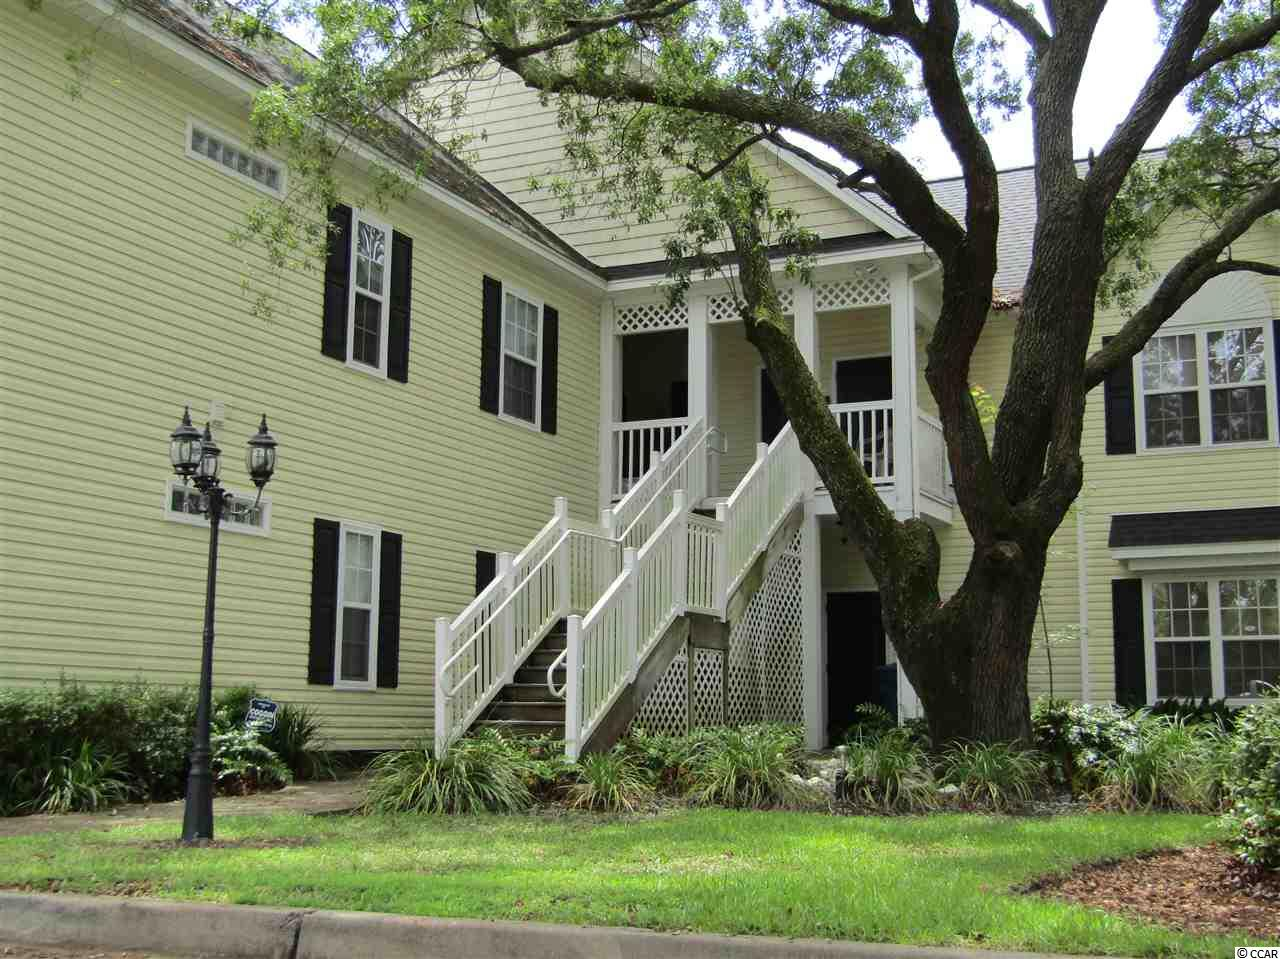 503 N Not Specified #2, Myrtle Beach, South Carolina